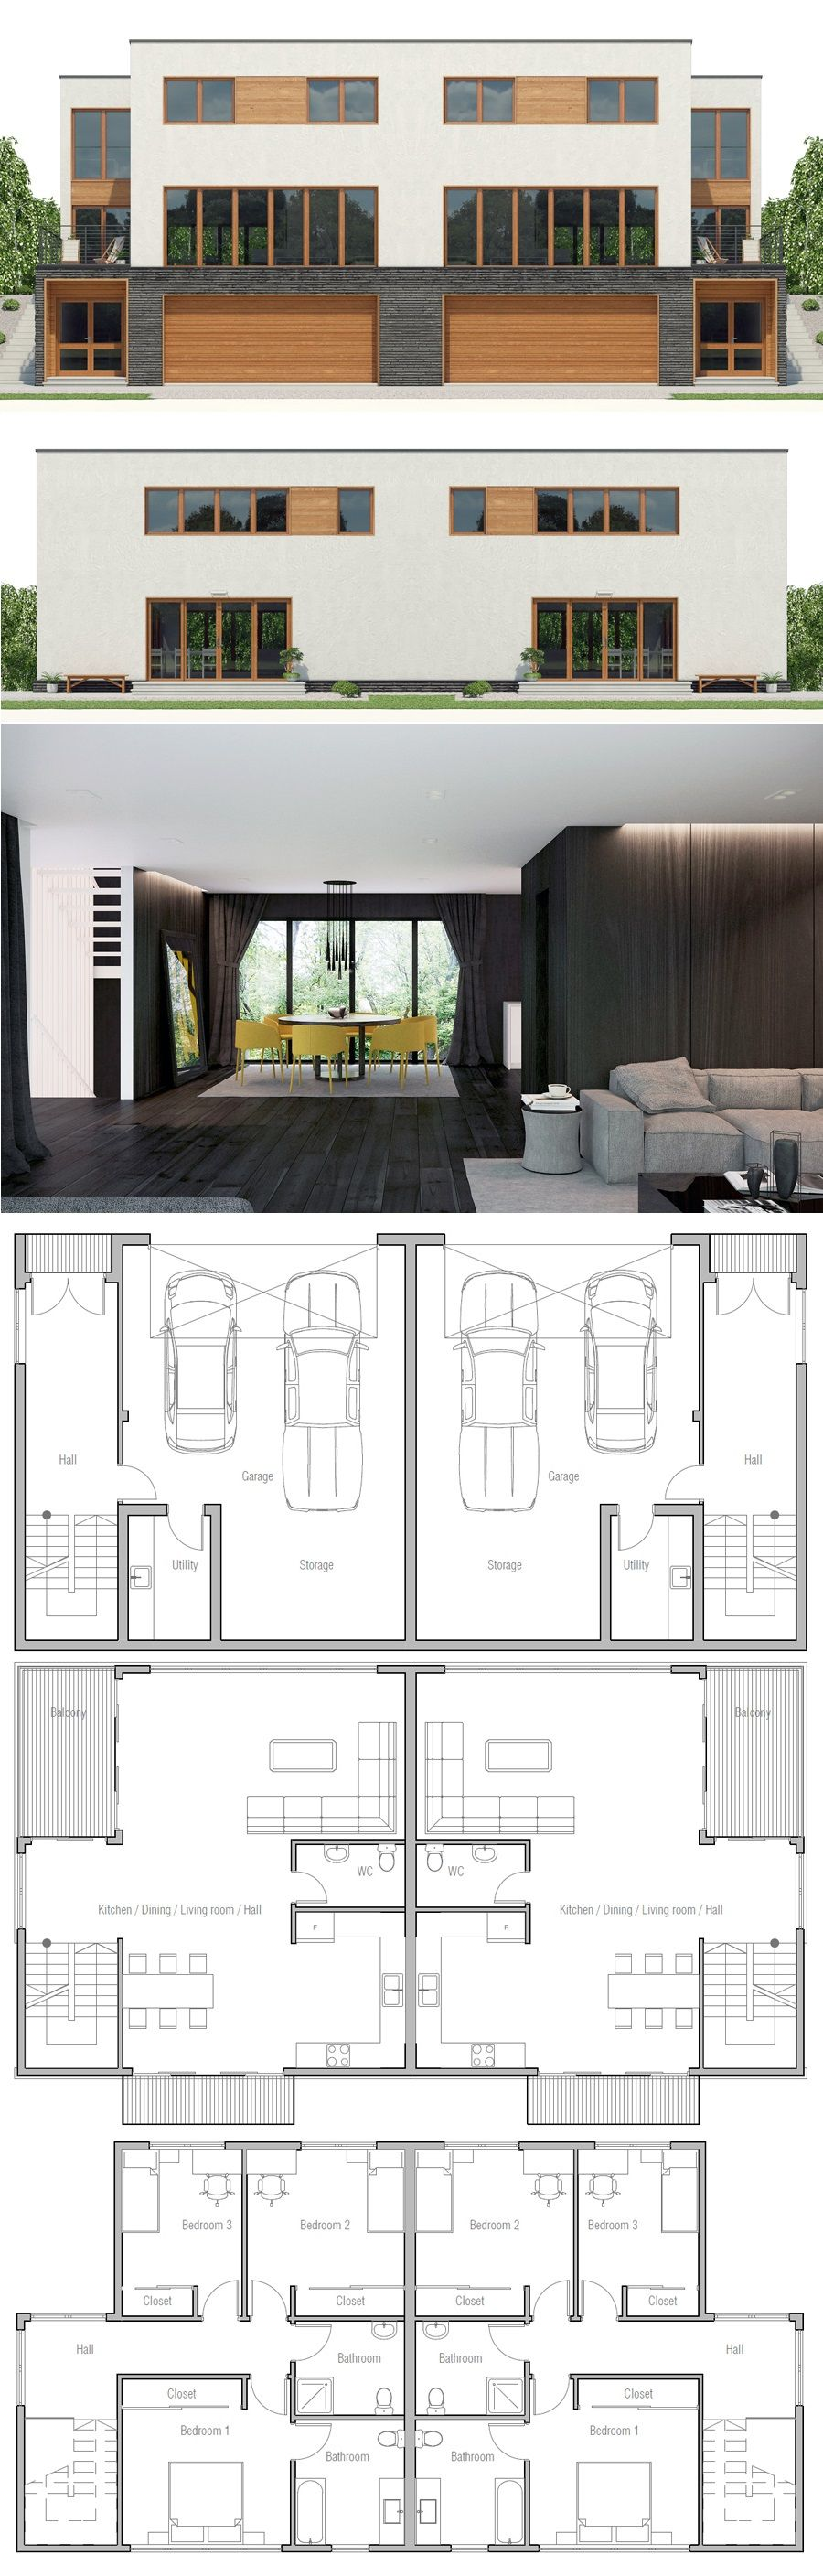 Shipping Container Home Plan Duplex House Plans Affordable House Plans House Plans